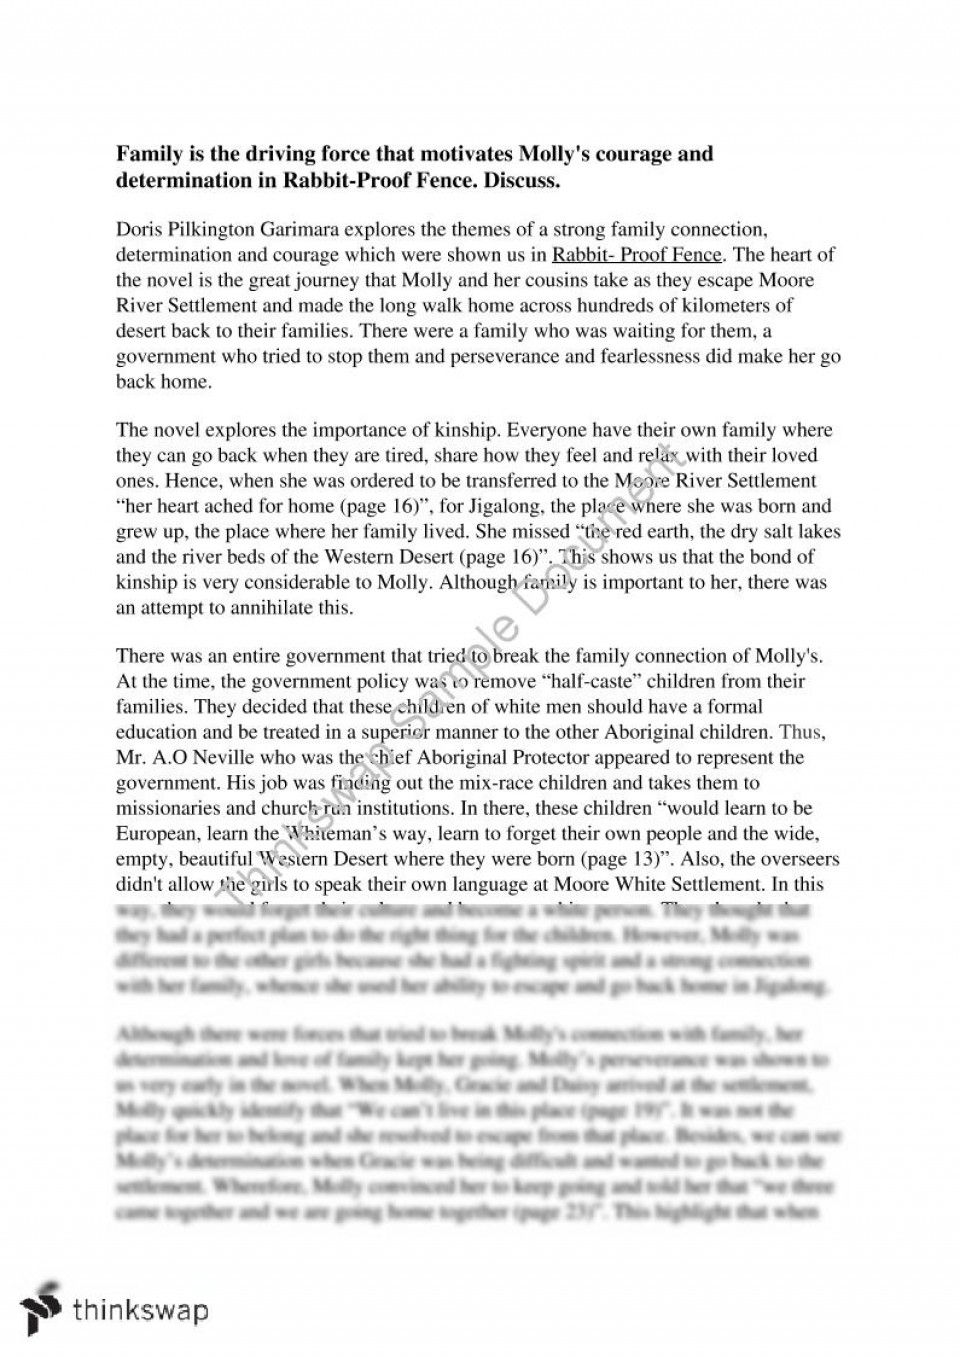 007 Essay Example 96427 Textresponseealcore Docx Fadded41 Rabbit Proof Fence Film Top Review 960